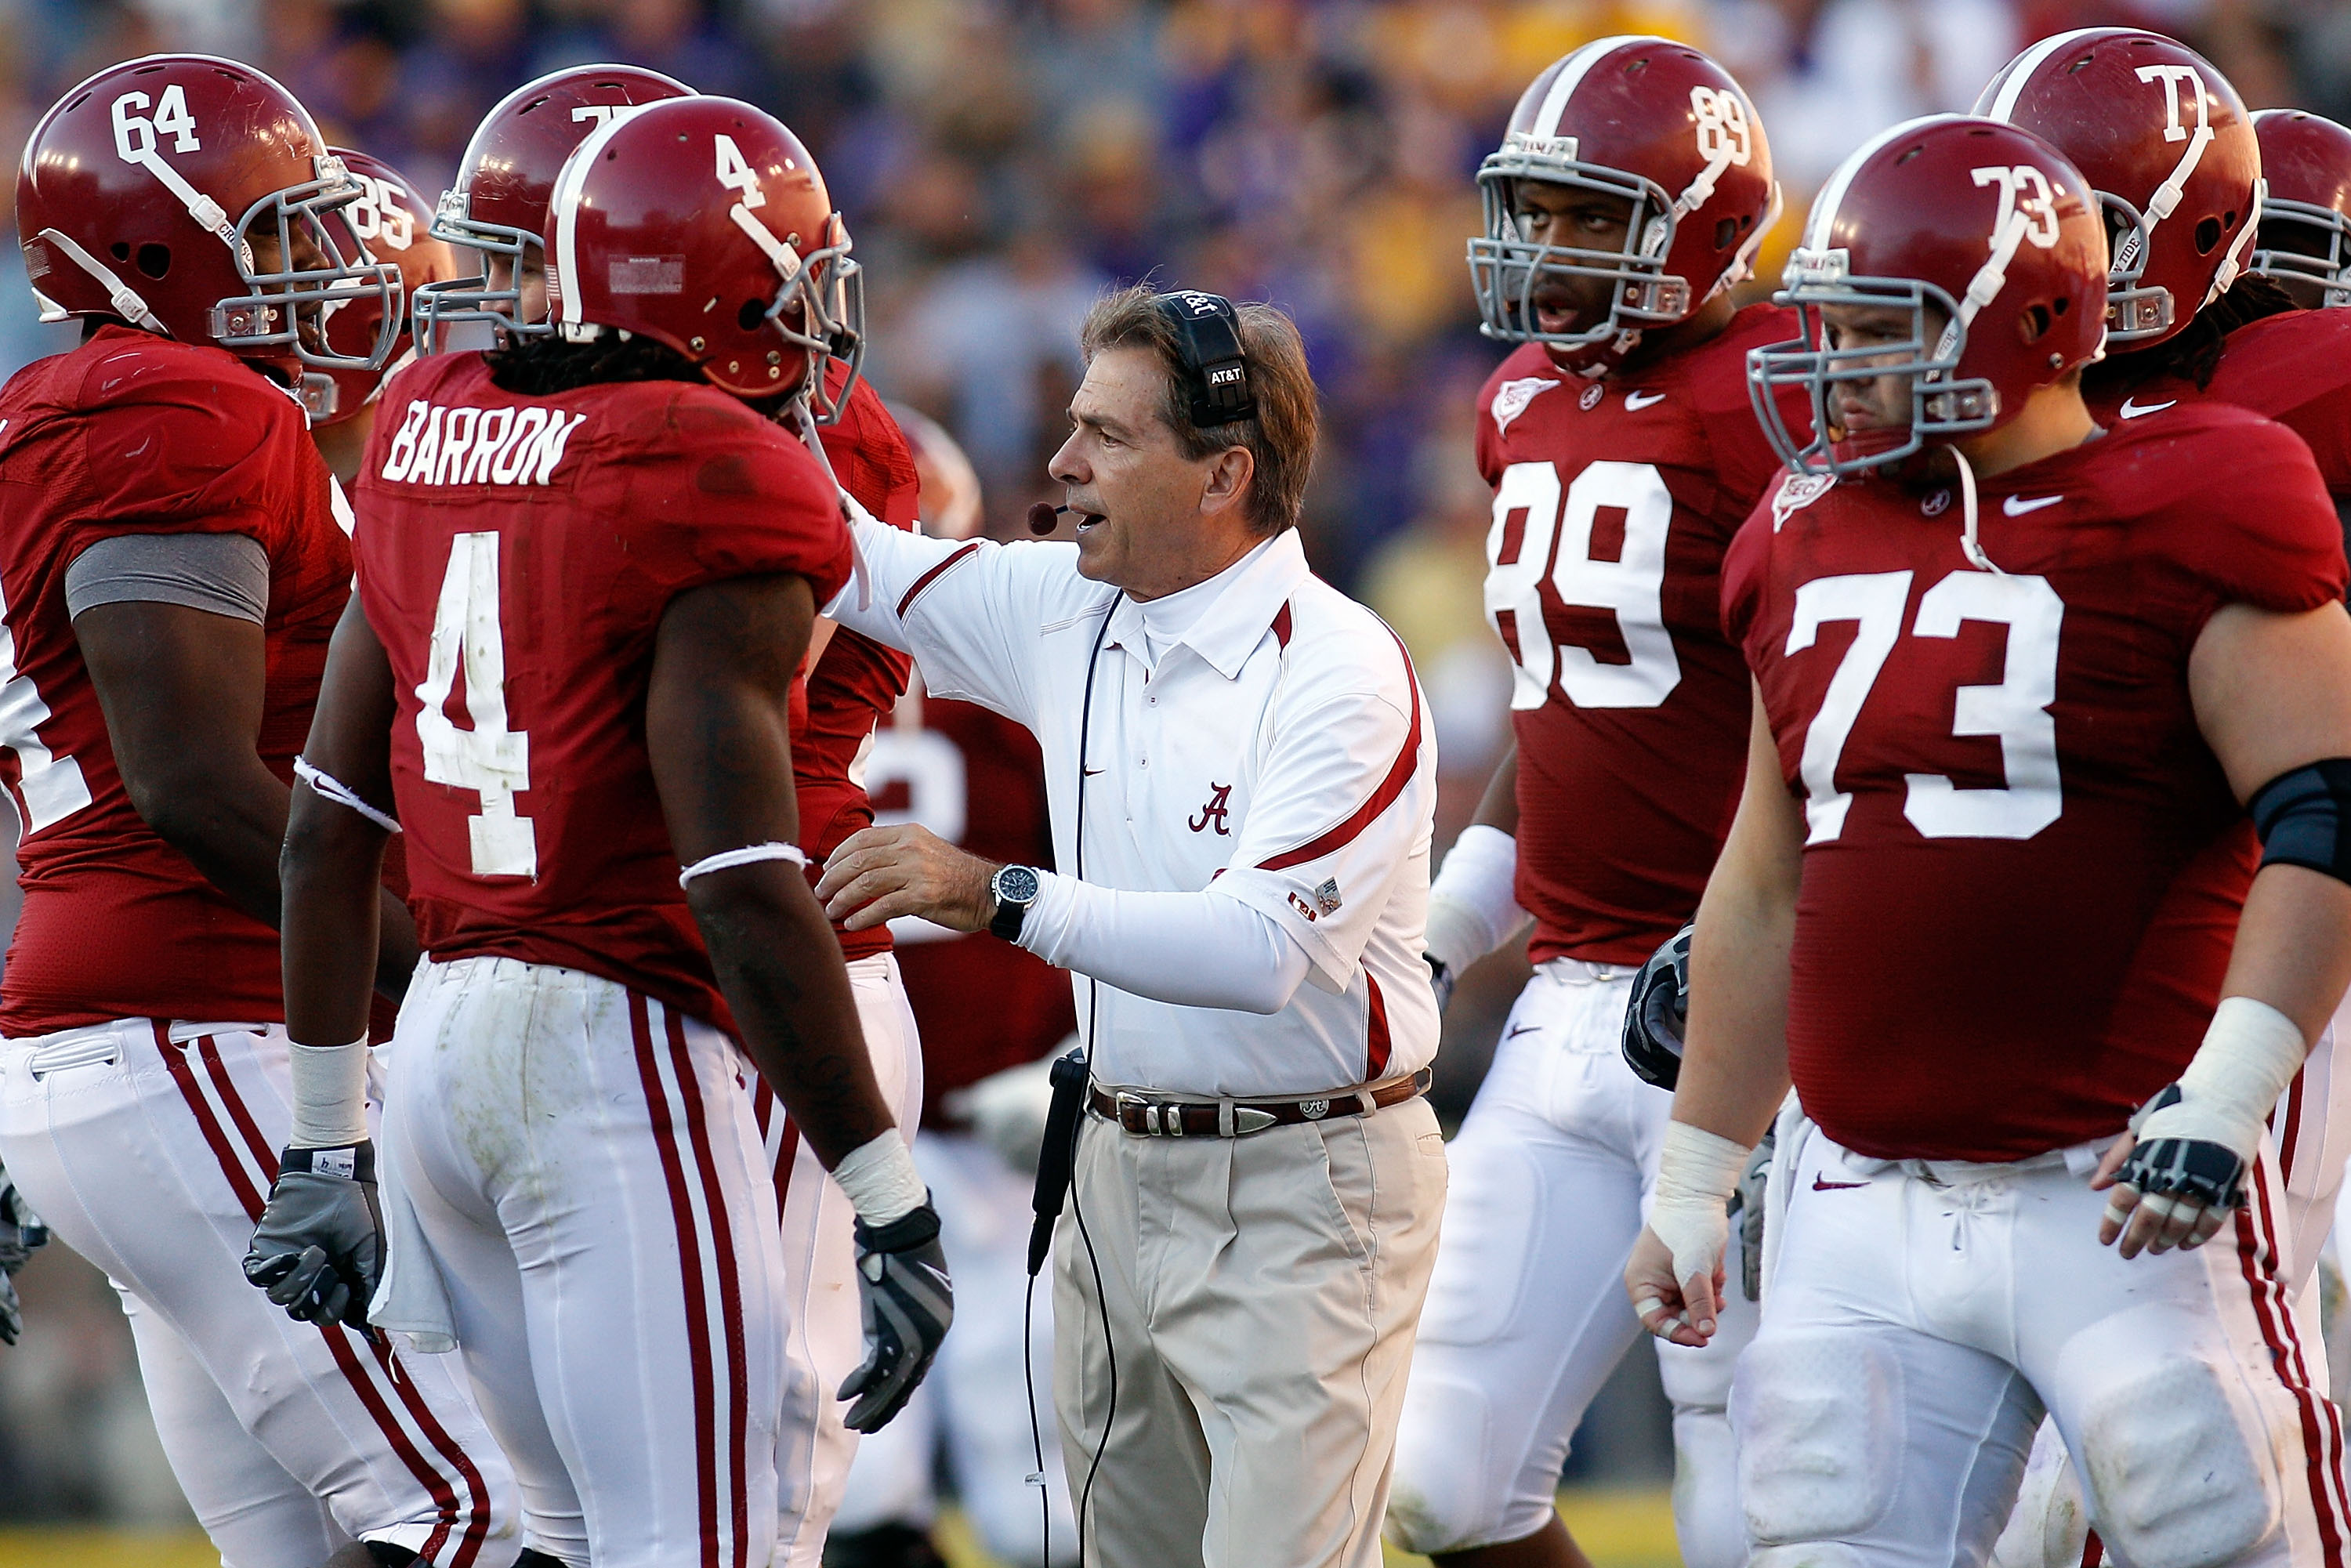 BATON ROUGE, LA - NOVEMBER 06:  Head coach Nick Saban of the Alabama Crimson Tide talks with his team during the game against the Louisiana State University Tigers at Tiger Stadium on November 6, 2010 in Baton Rouge, Louisiana. The Tigers defeated the Cri